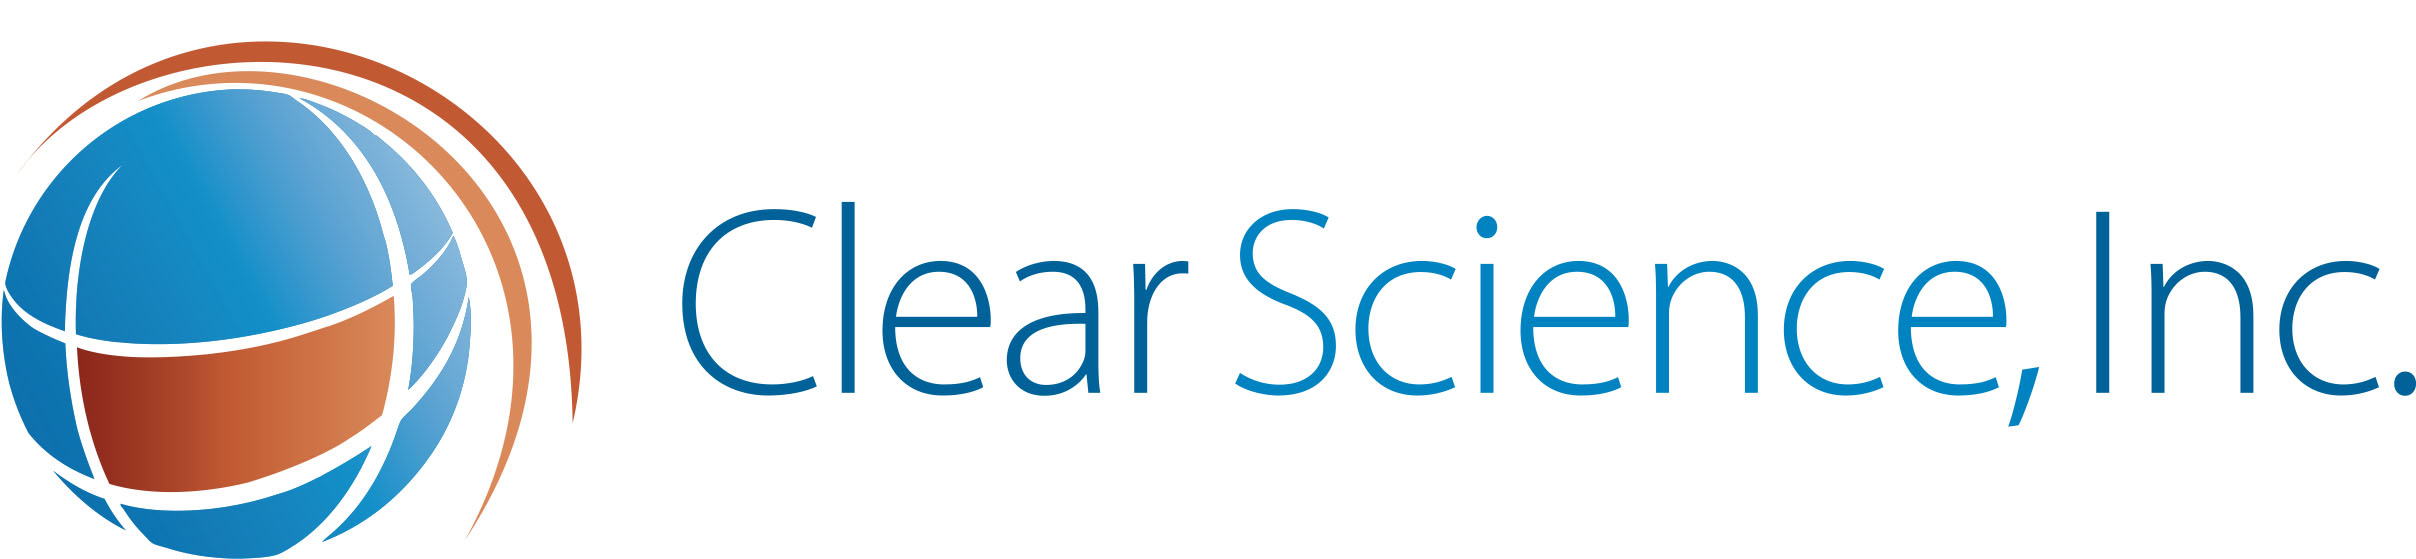 Clear Science, Inc. (CSI) logo